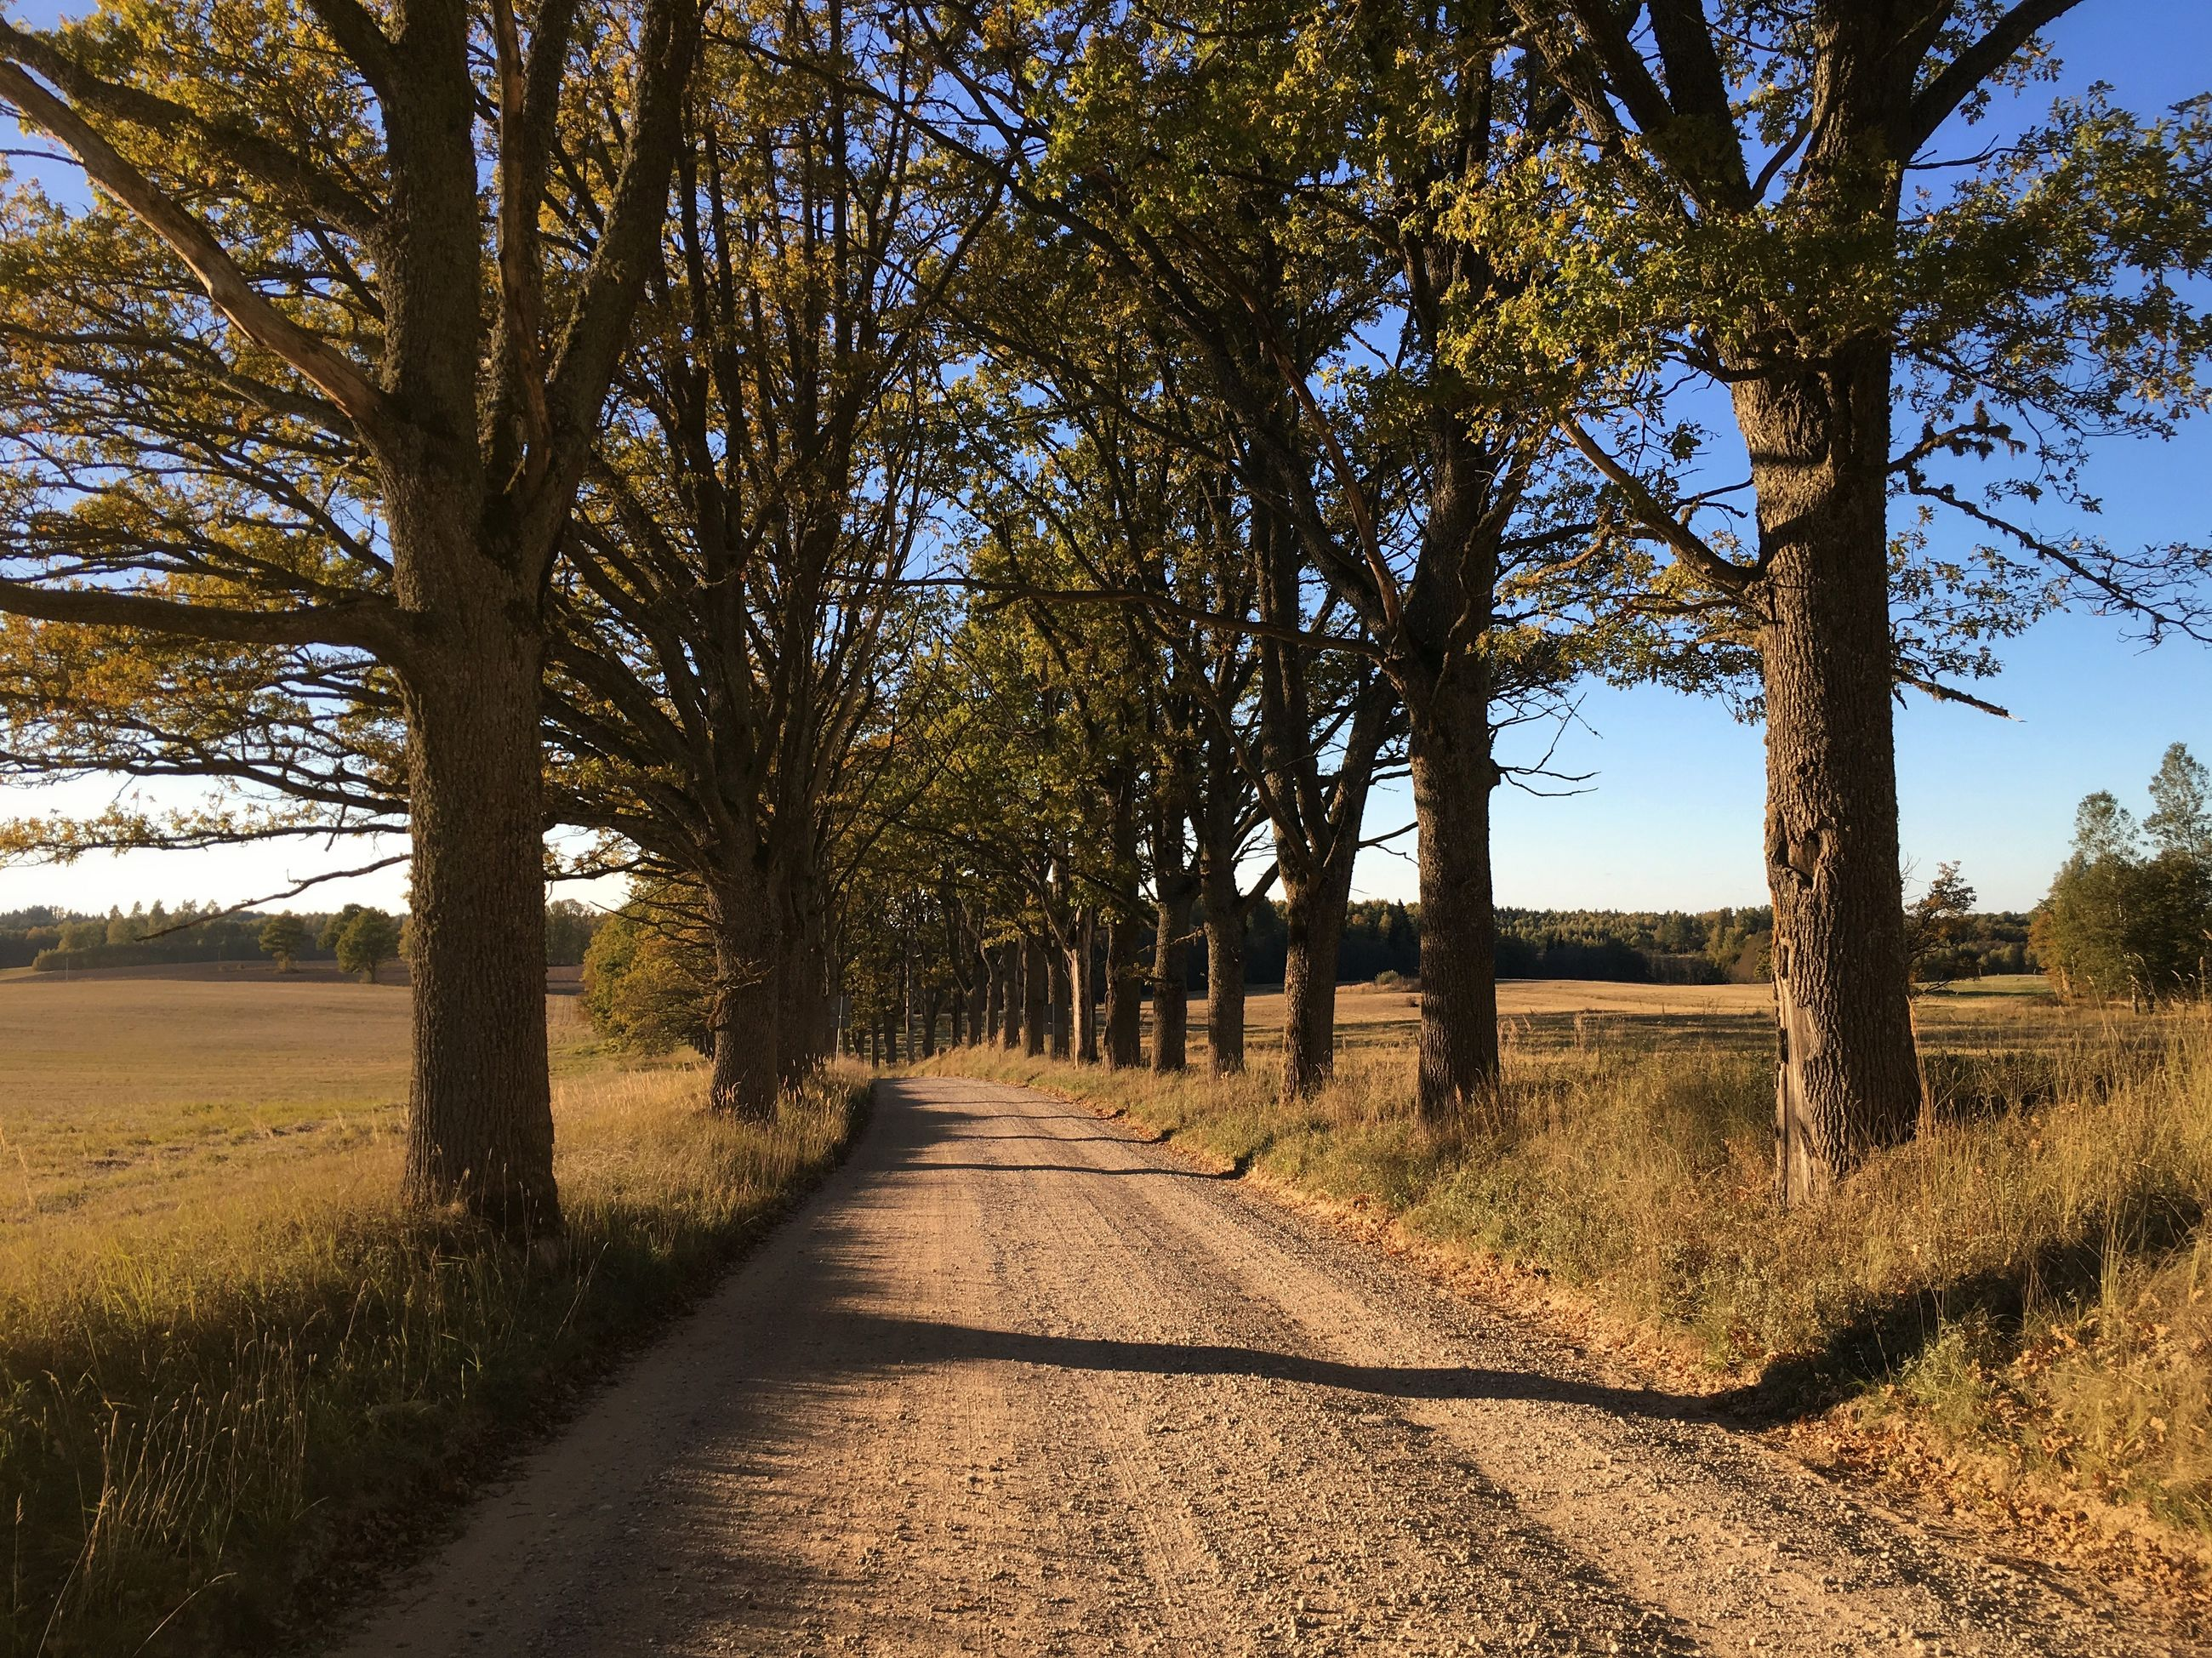 tree, the way forward, tranquility, diminishing perspective, dirt road, tranquil scene, landscape, growth, vanishing point, road, field, nature, rural scene, sky, beauty in nature, scenics, sunlight, transportation, clear sky, footpath